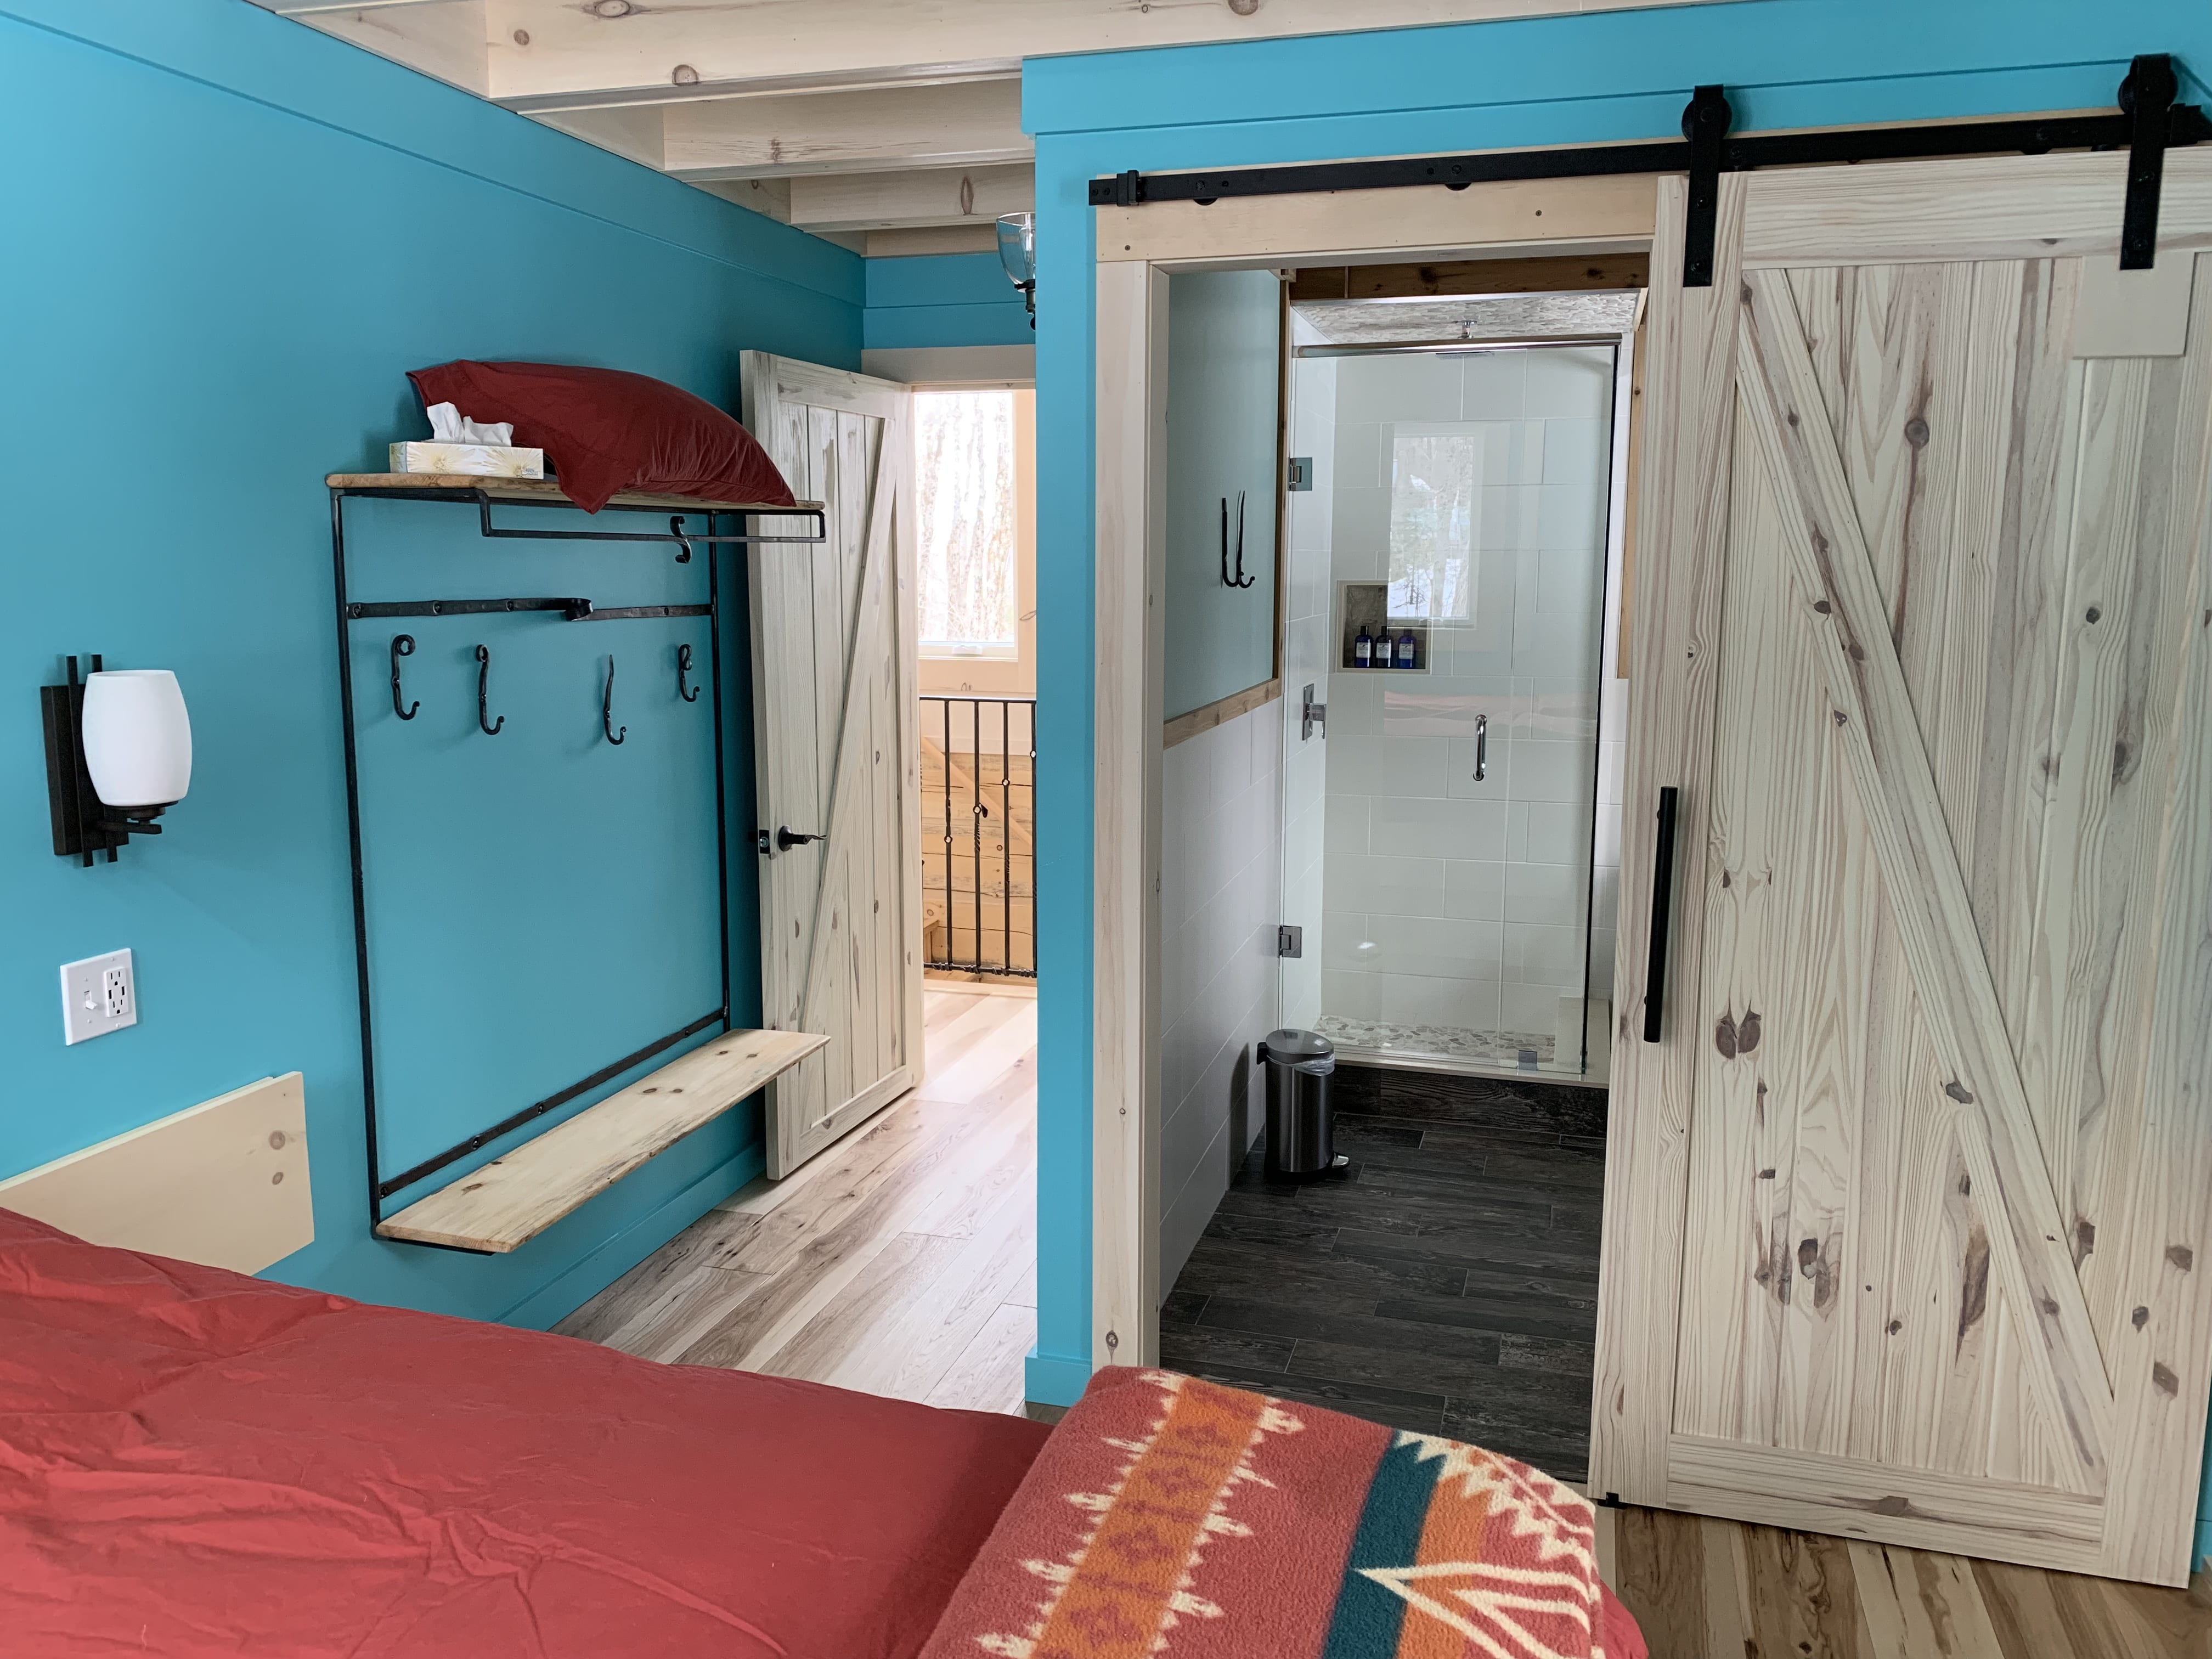 Luxurious bathrooms for each bedroom in the log cabin